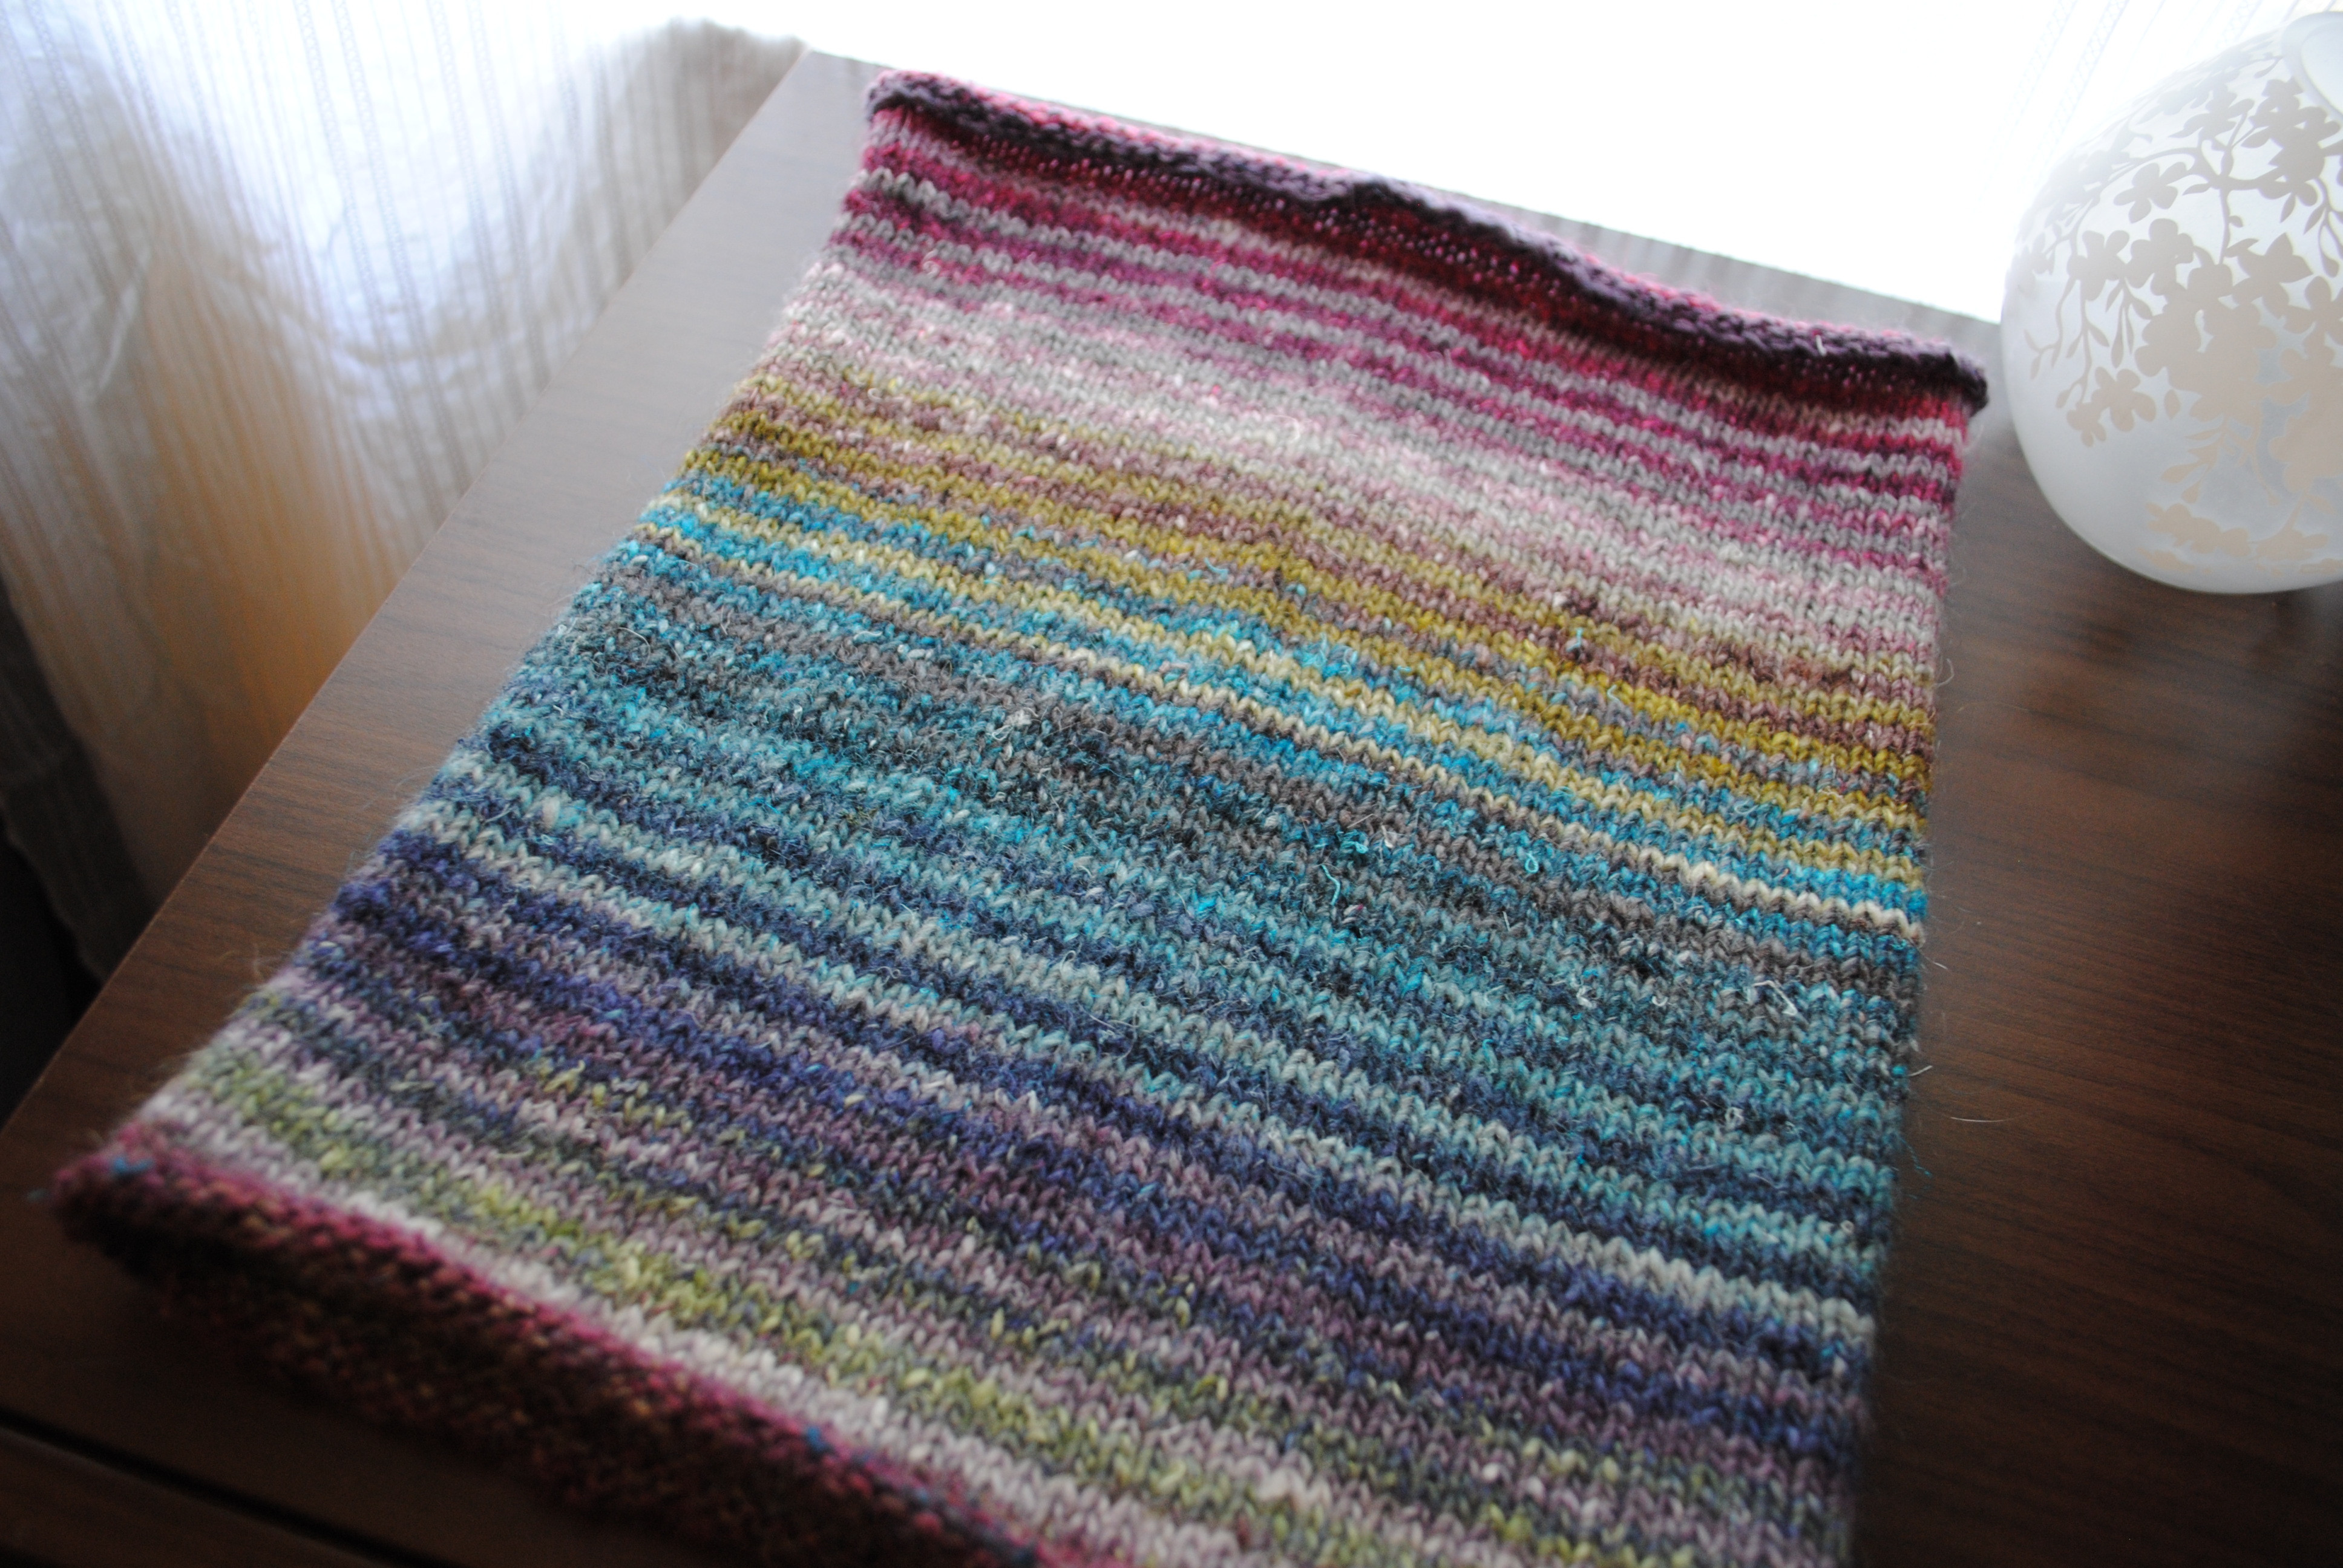 Noro Yarn Patterns Unique noro Silk Garden Knitting Patterns Garden Ftempo Of Incredible 46 Pics noro Yarn Patterns